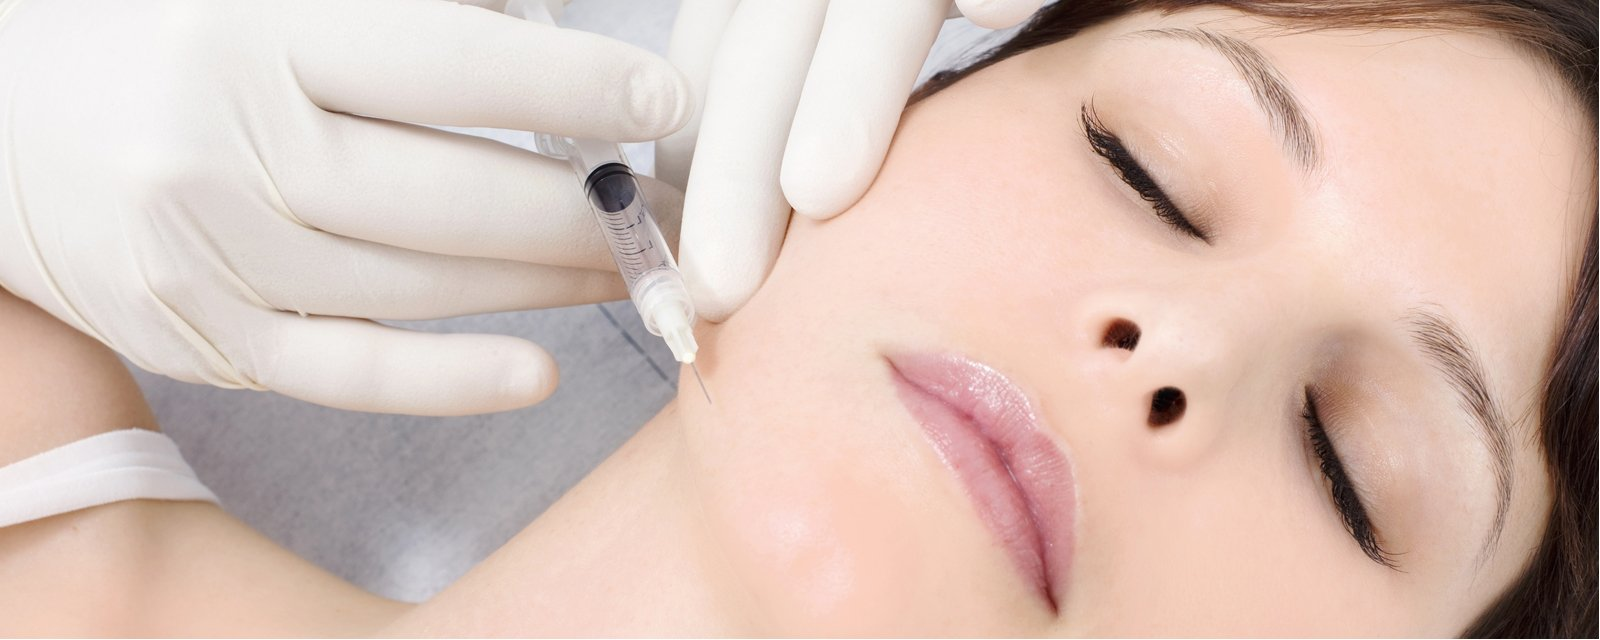 best acne treatment clinic in delhi, botox clinic treatment in delhi, dermal fillers treatment in delhi,dermal fillers treatment, dermal fillers, dermal fillers before and after